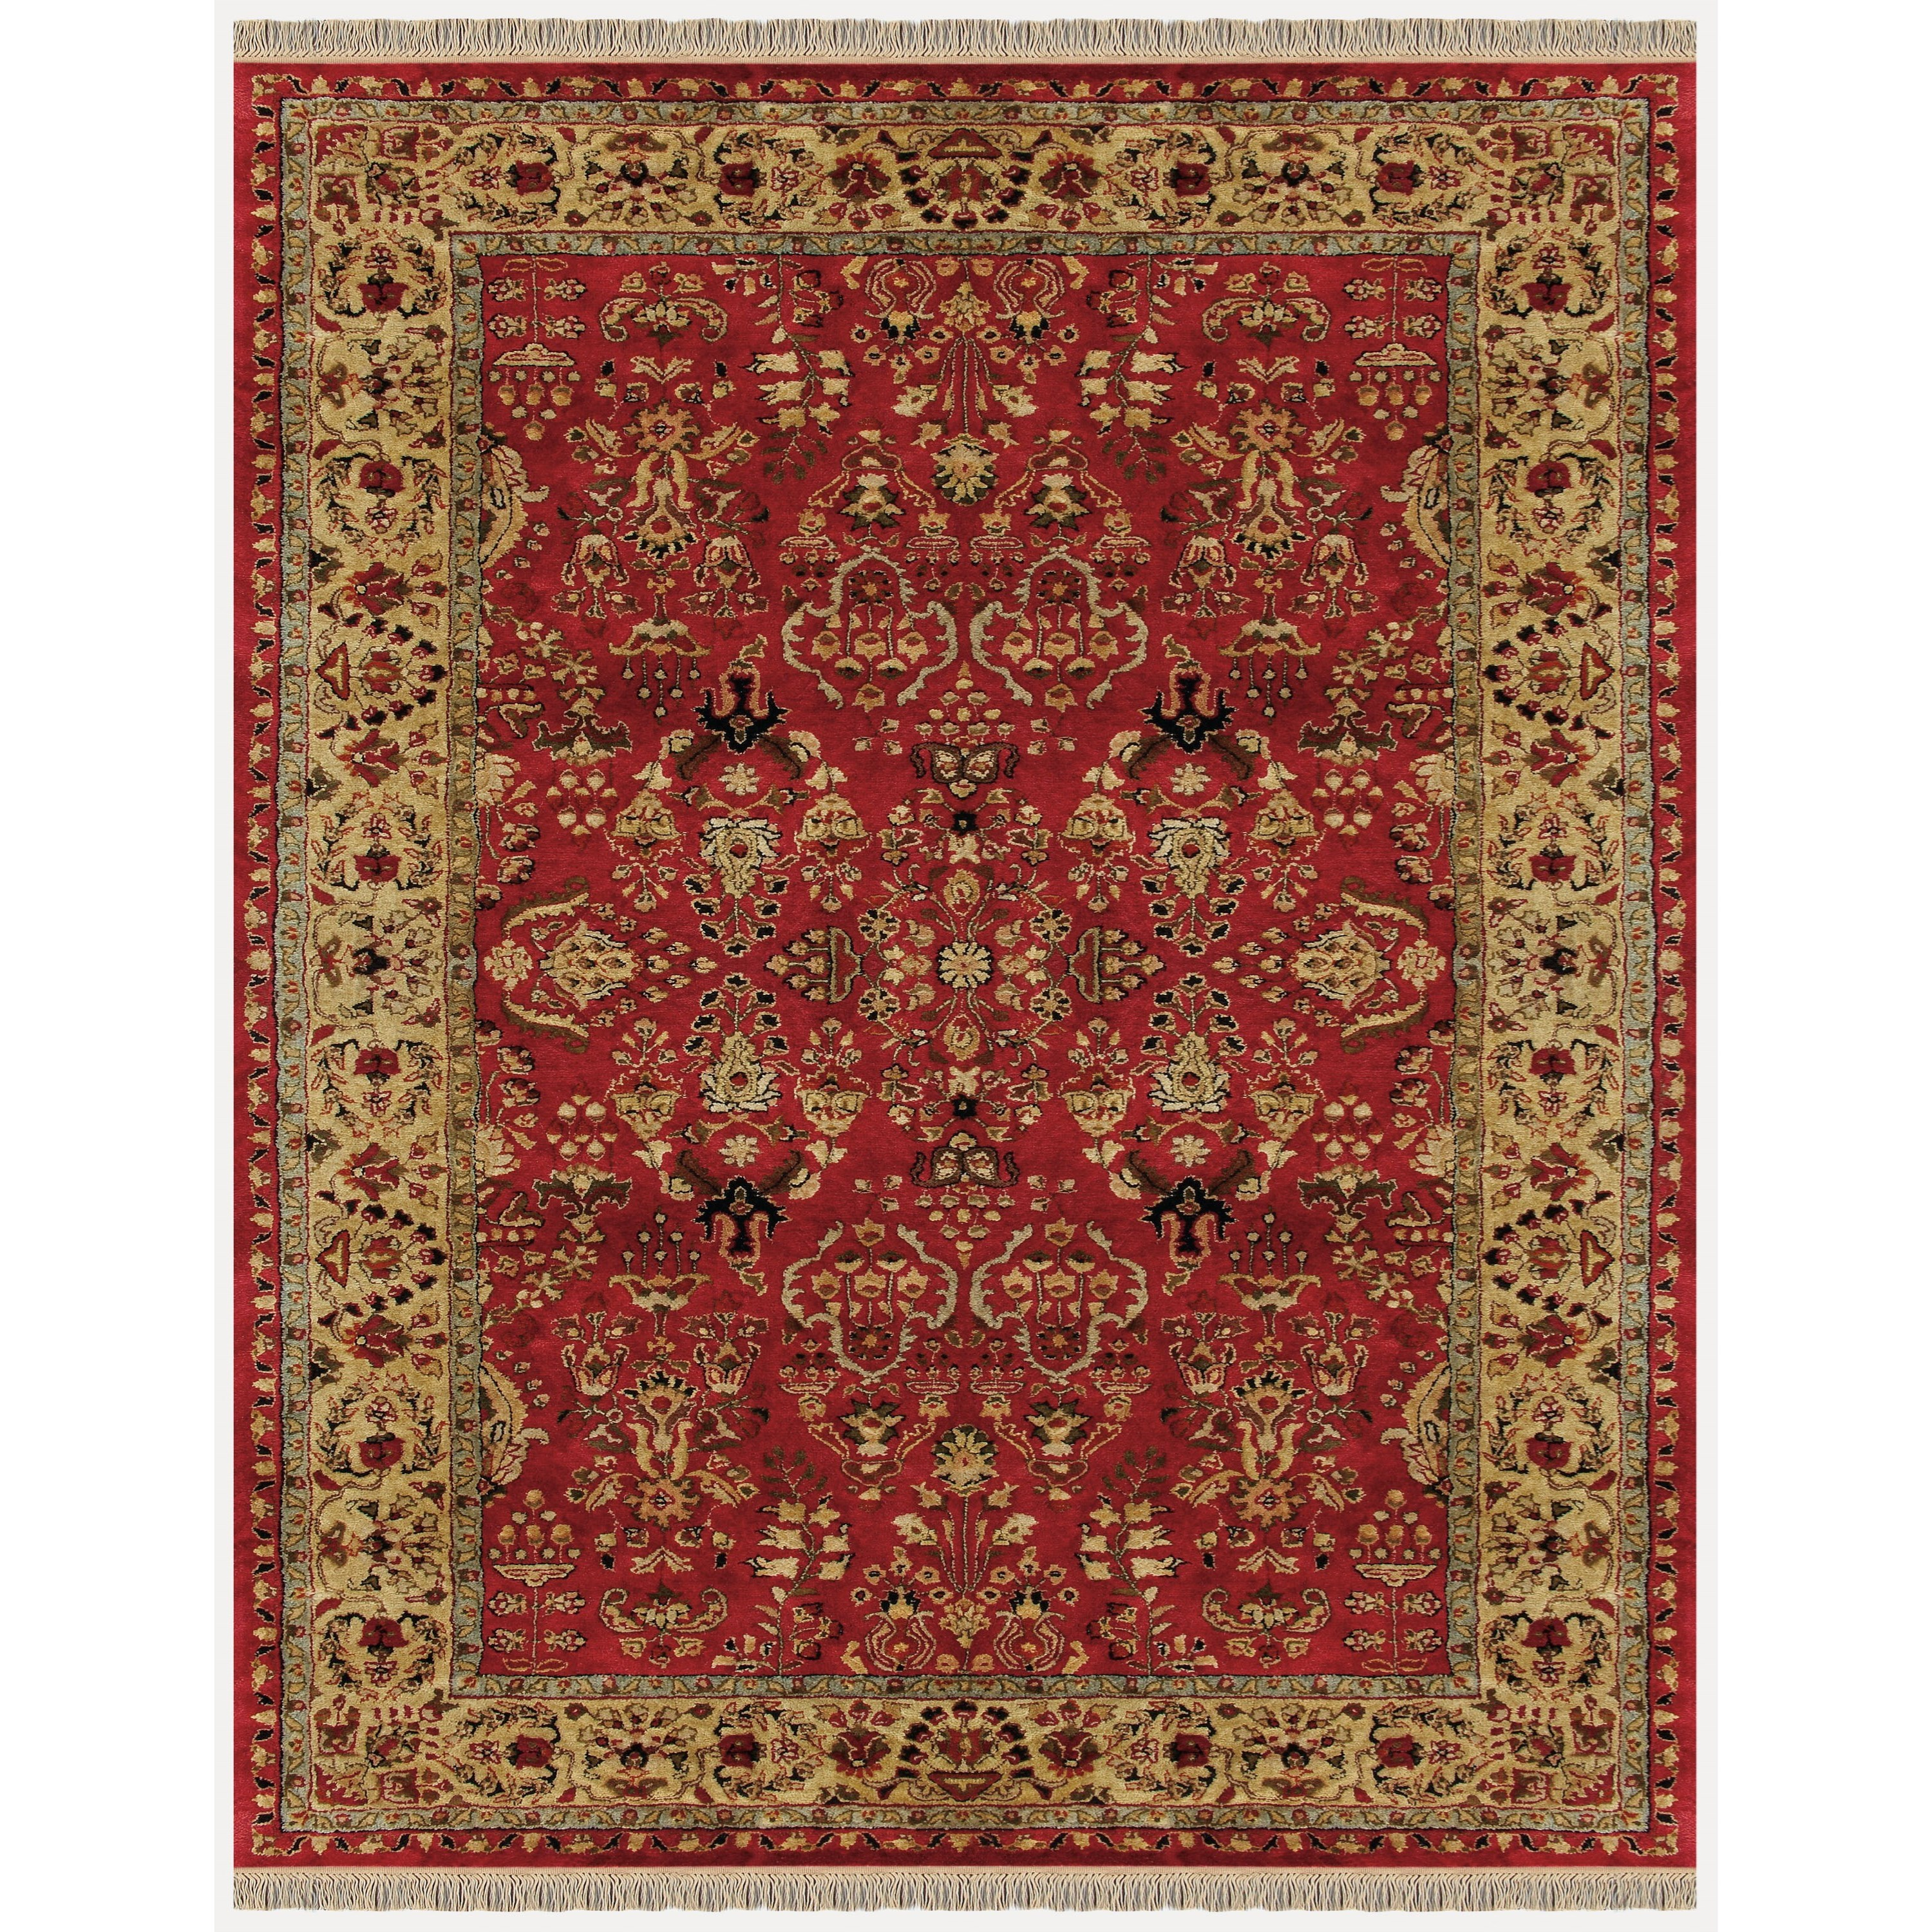 Amore Red/Light Gold 8' X 11' Area Rug by Feizy Rugs at Sprintz Furniture